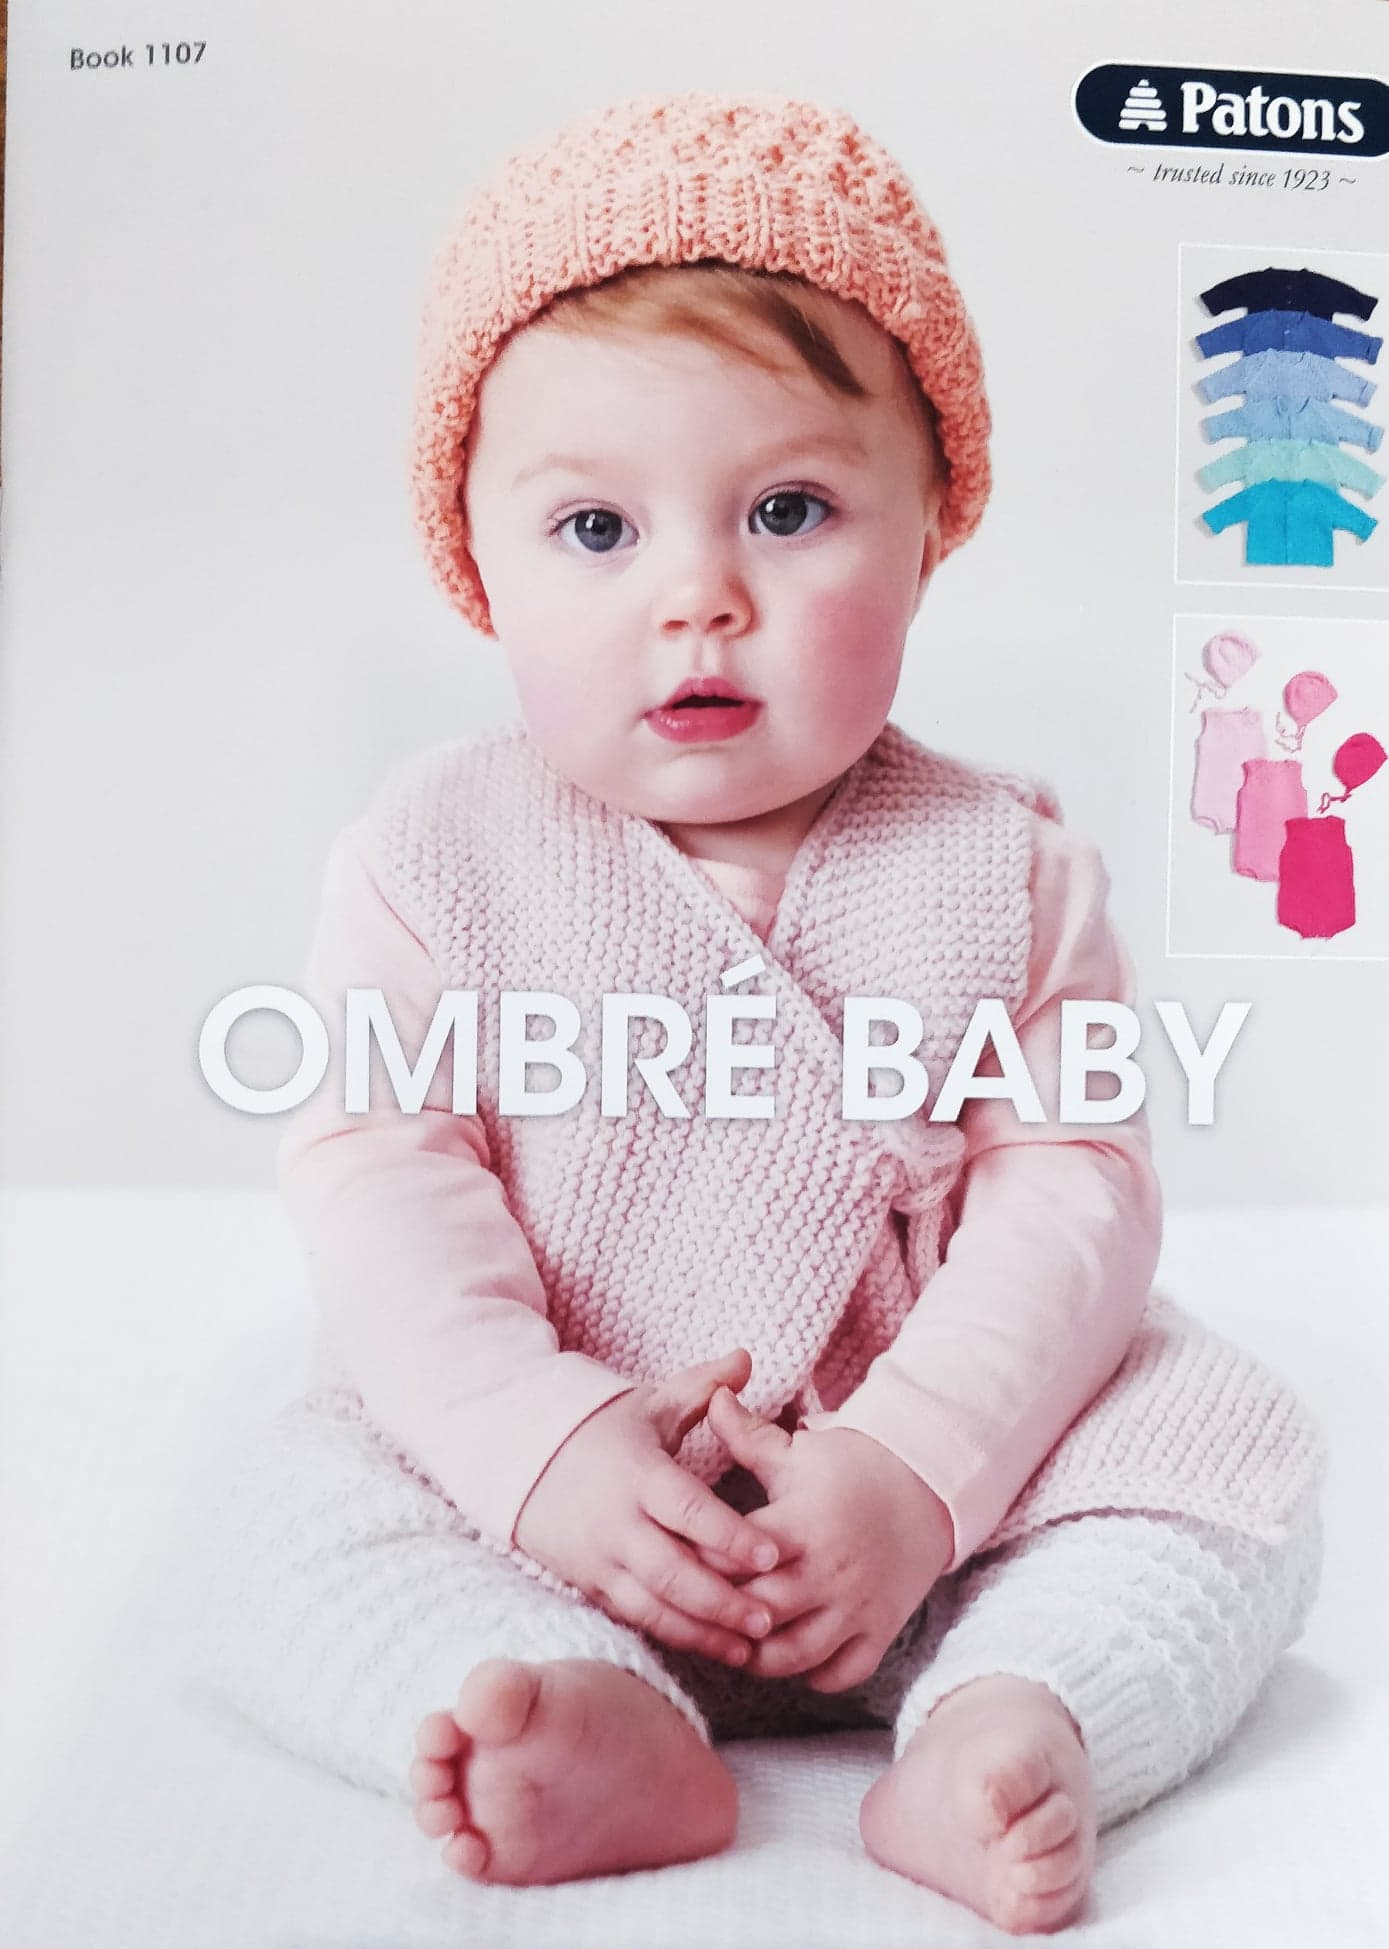 c2fc4e9772bb Buy Patons Ombre Baby Pattern Book 1107 · AfterPay Zip · The Wool Room